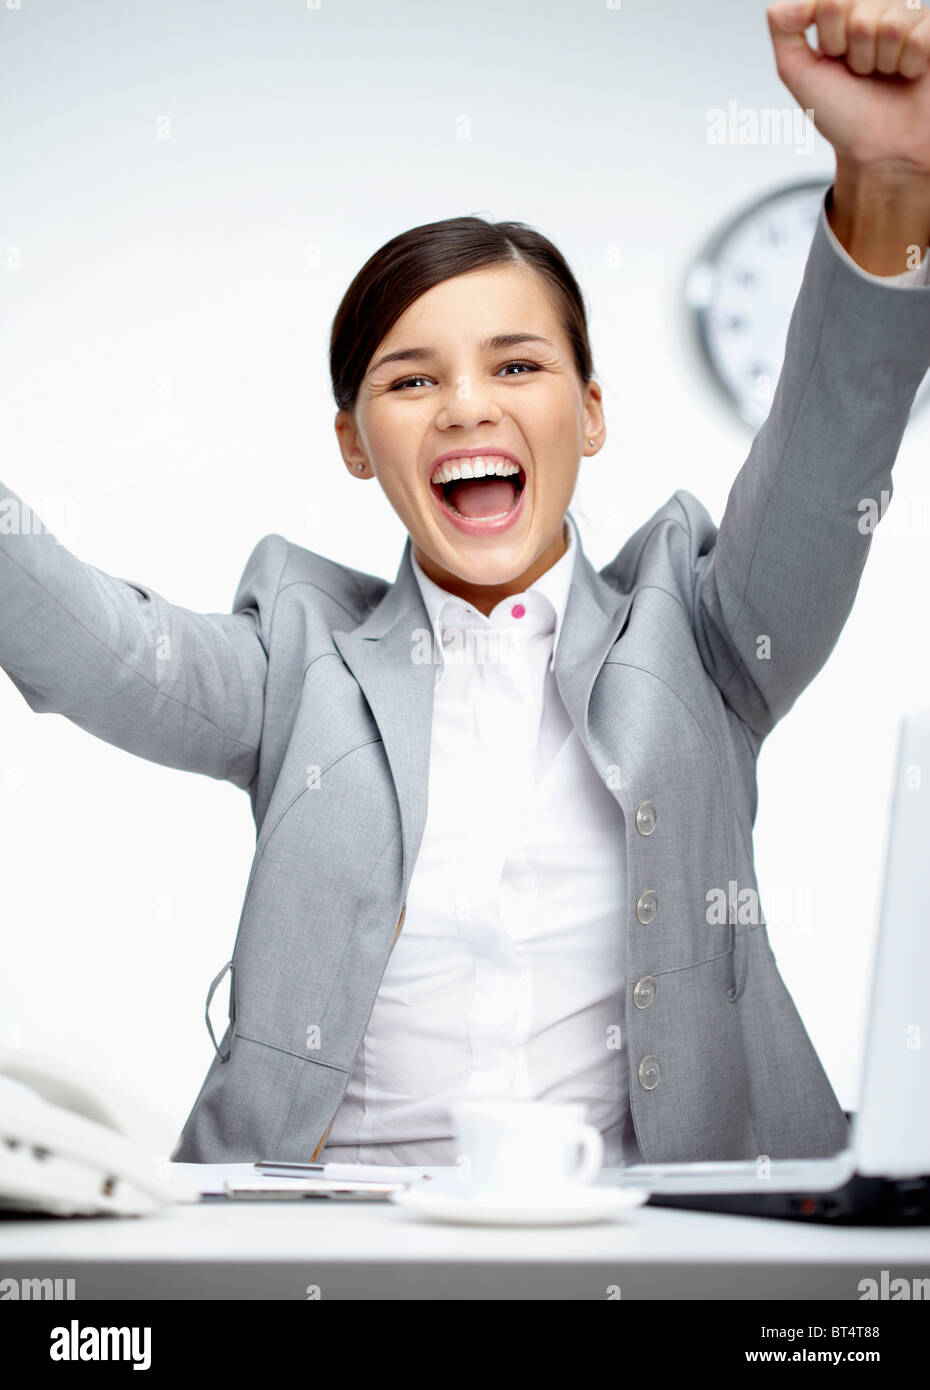 Image of young businesswoman shouting in gladness with raised arms - Stock Image